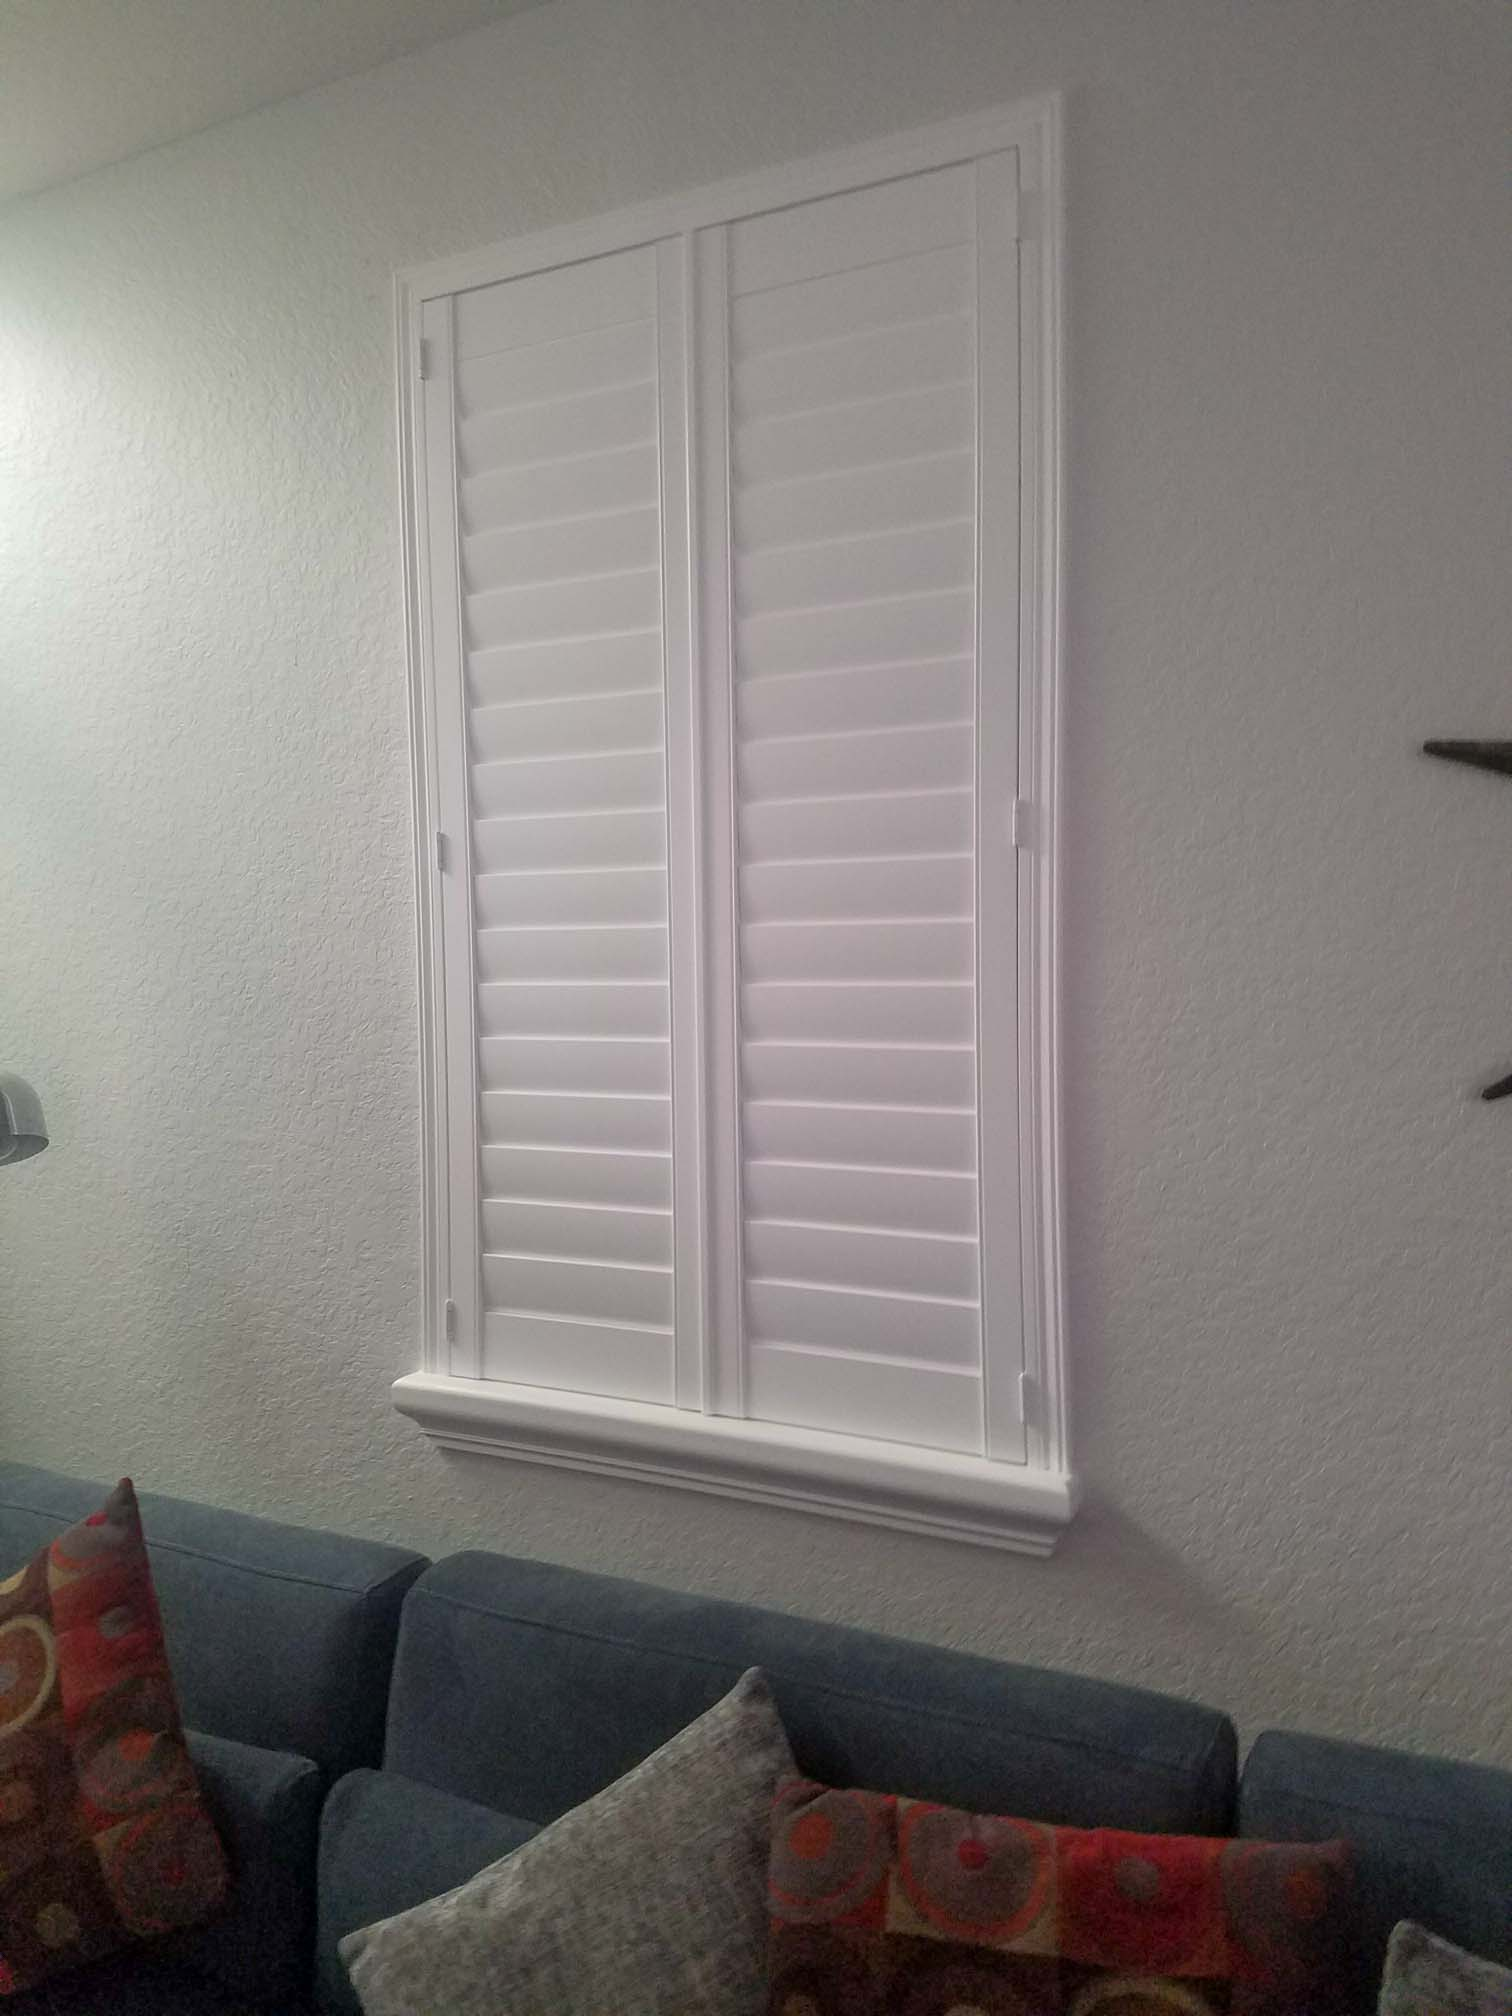 plantation shutters gallery PLANTATION SHUTTERS GALLERY 20171221 134646